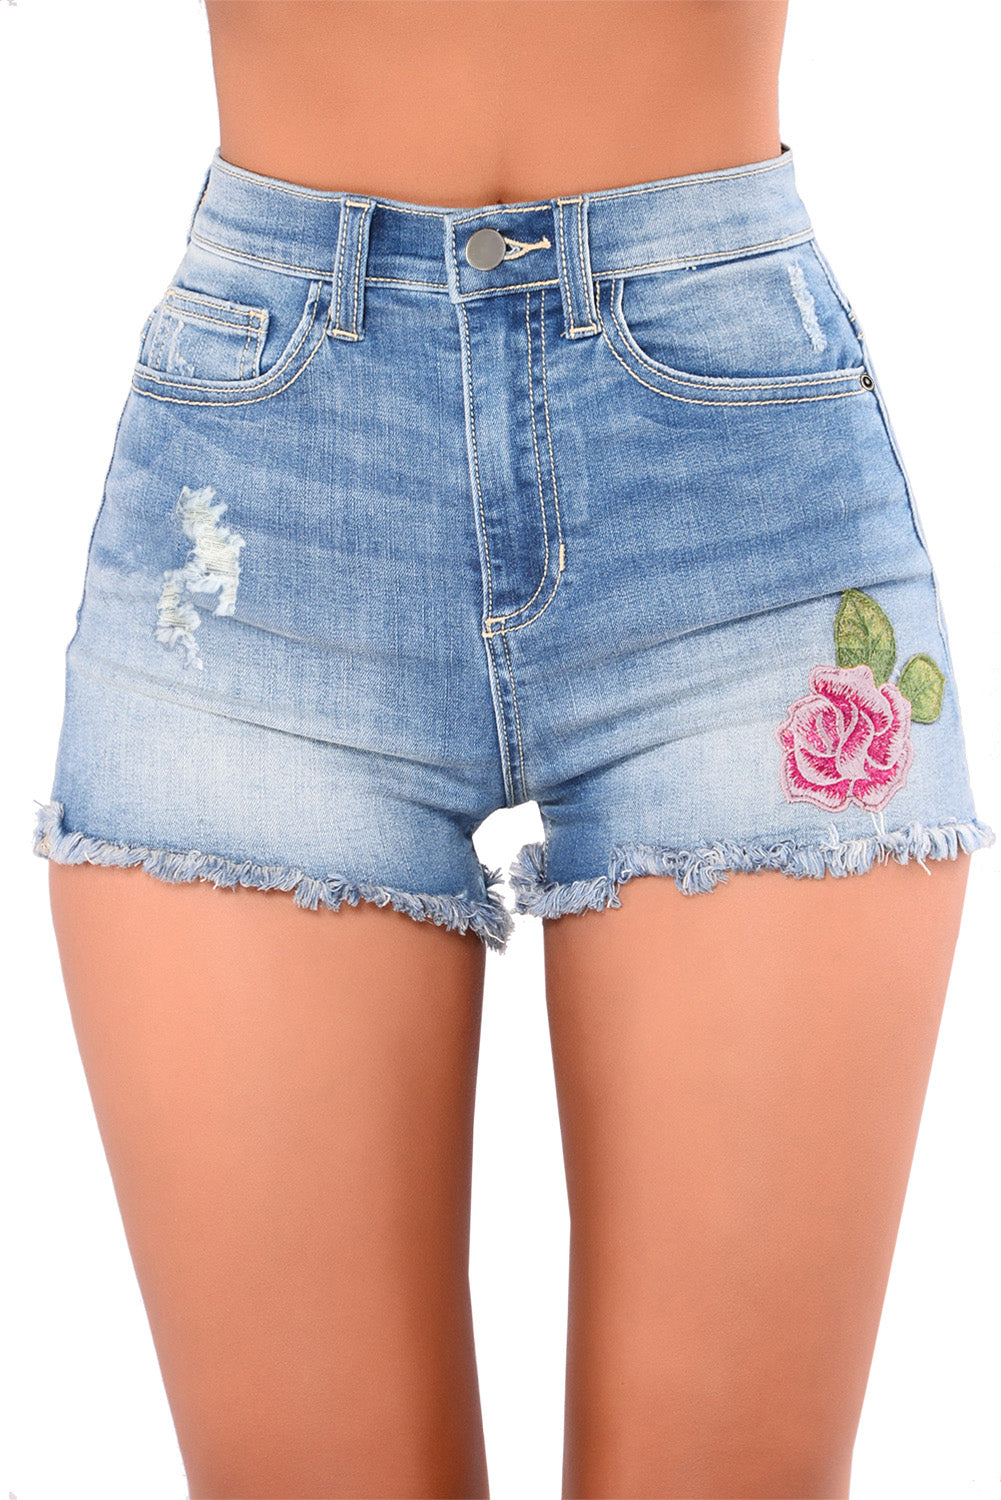 Rose Embroidered Whiskered Cuff Medium Blue Denim Shorts